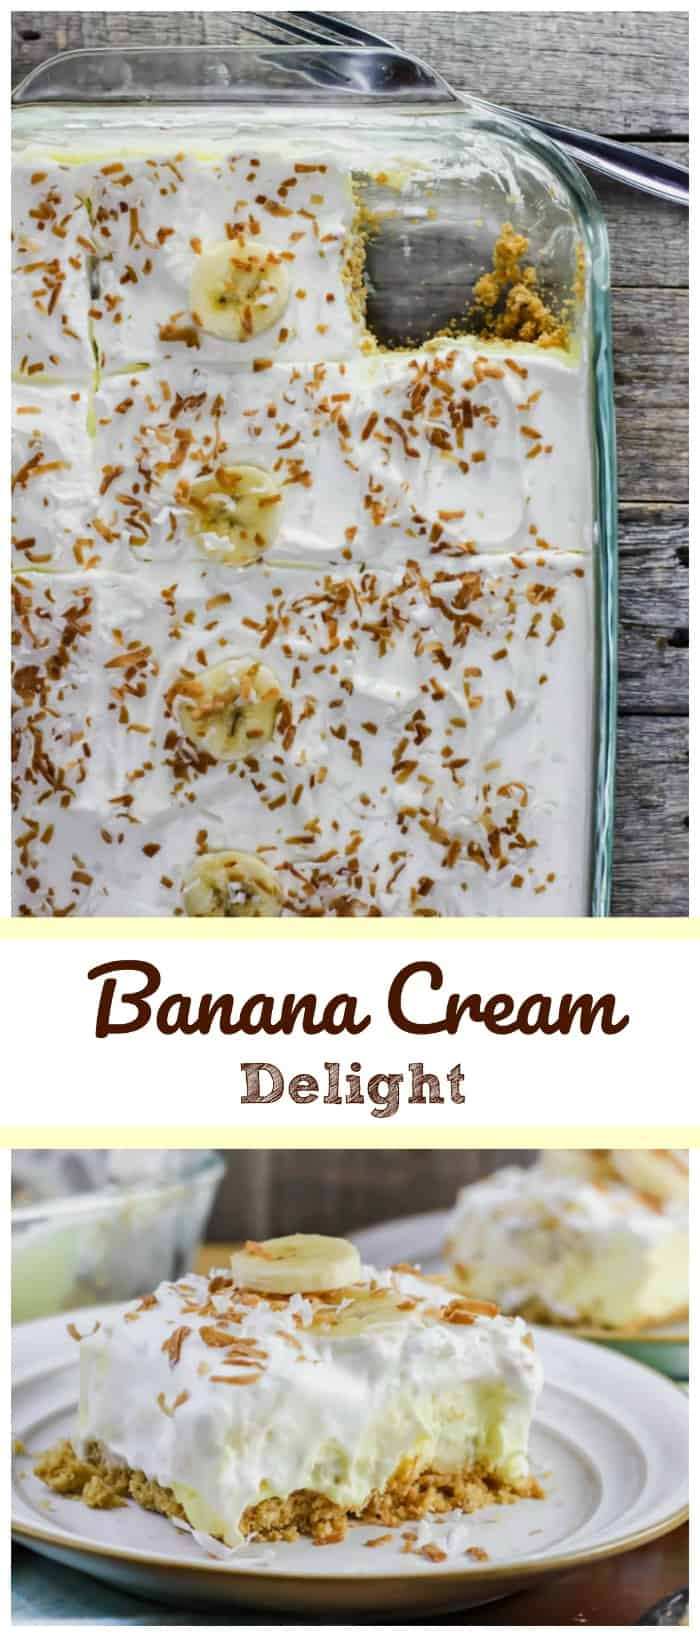 Luscious Banana Cream Delight - Creamy vanilla cheesecake pudding dessert with a layer of banana slices throughout on a buttery graham cracker crust and some fluffy whipped cream on top sounds pretty damn good! It's a classic!! It's delectable!! Banana Cream Pie in a pan!! #banana #pudding #nobake #dessert